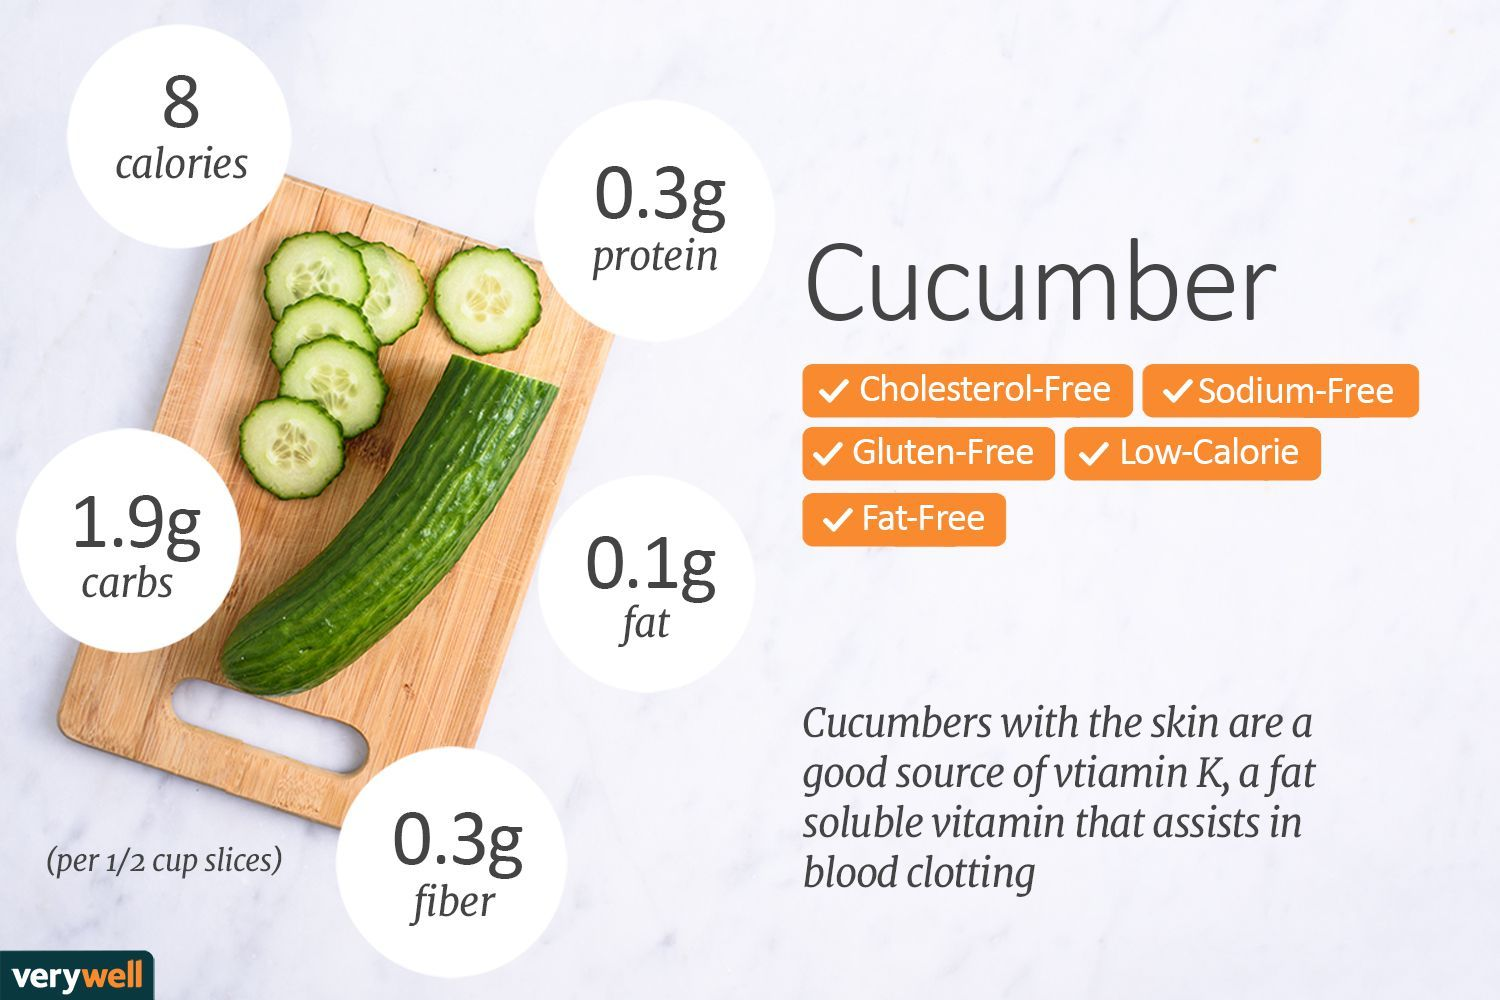 See Cucumber Nutrition Facts And Carbs Compare Pickle Calories To Cucumber Calories And Get Idea Cucumber Nutrition Cucumber Calories Cucumber Nutrition Facts